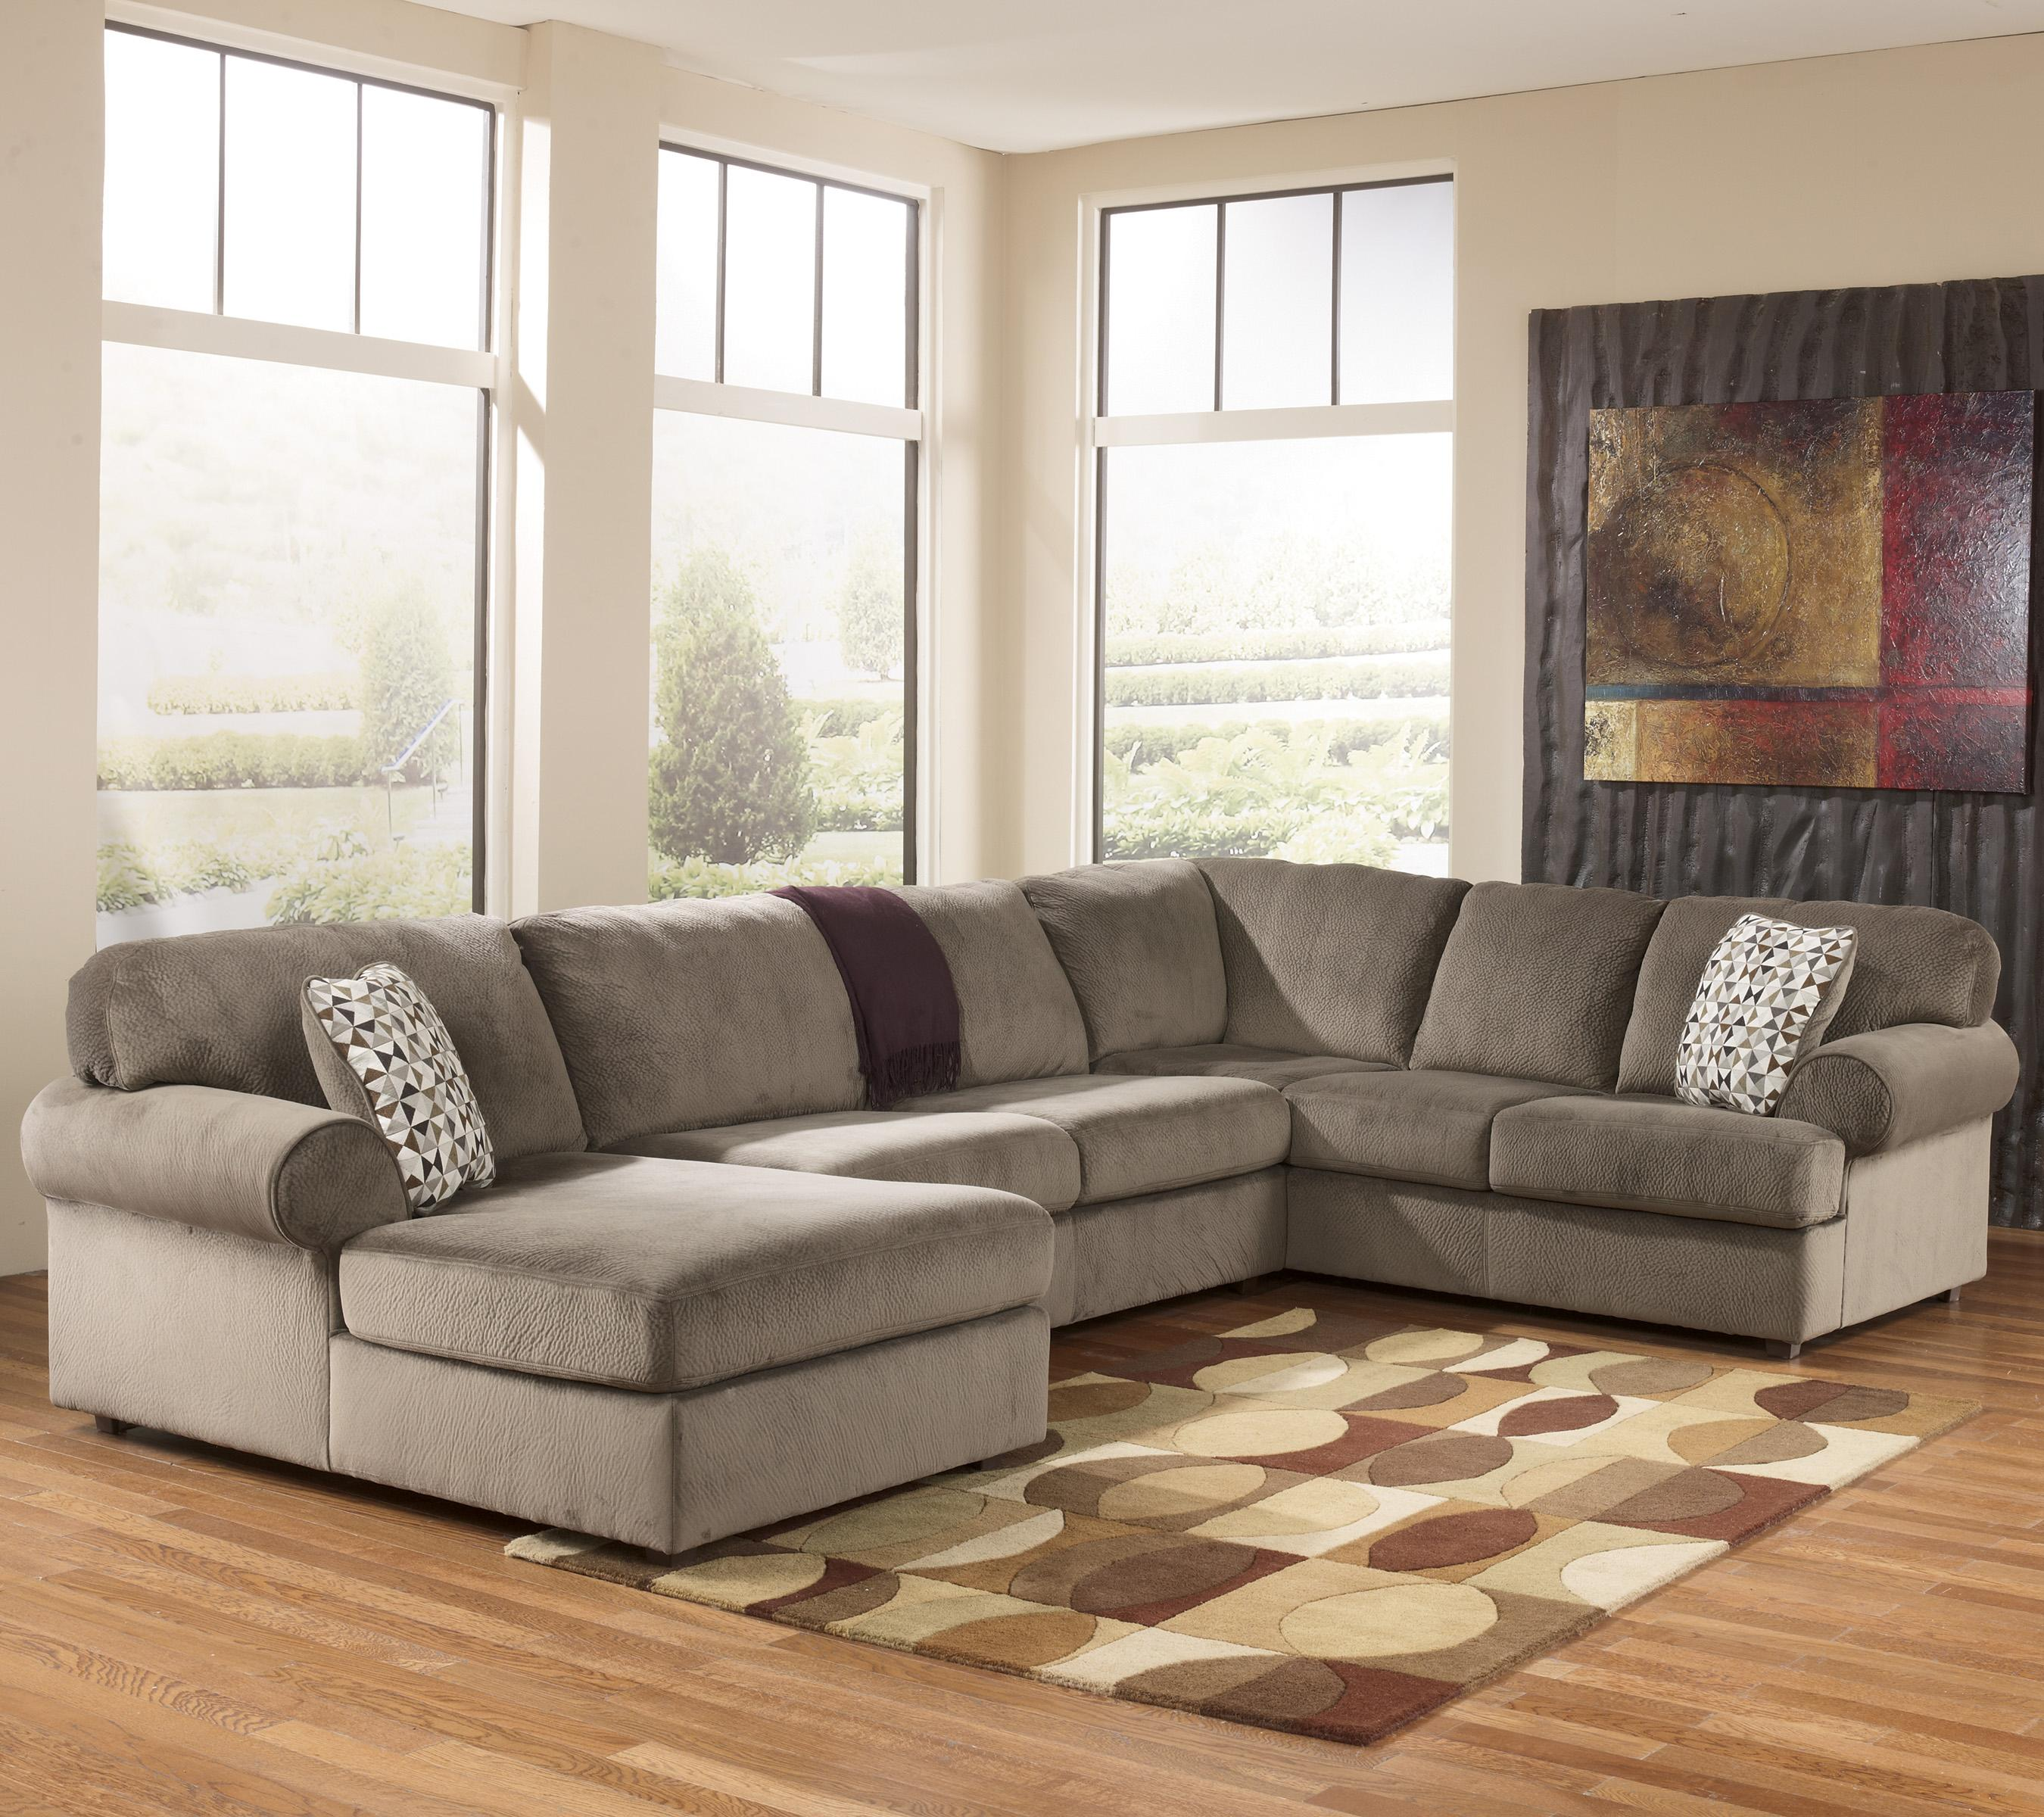 Ashleys Furnitures: Casual Sectional Sofa With Left Chaise By Signature Design